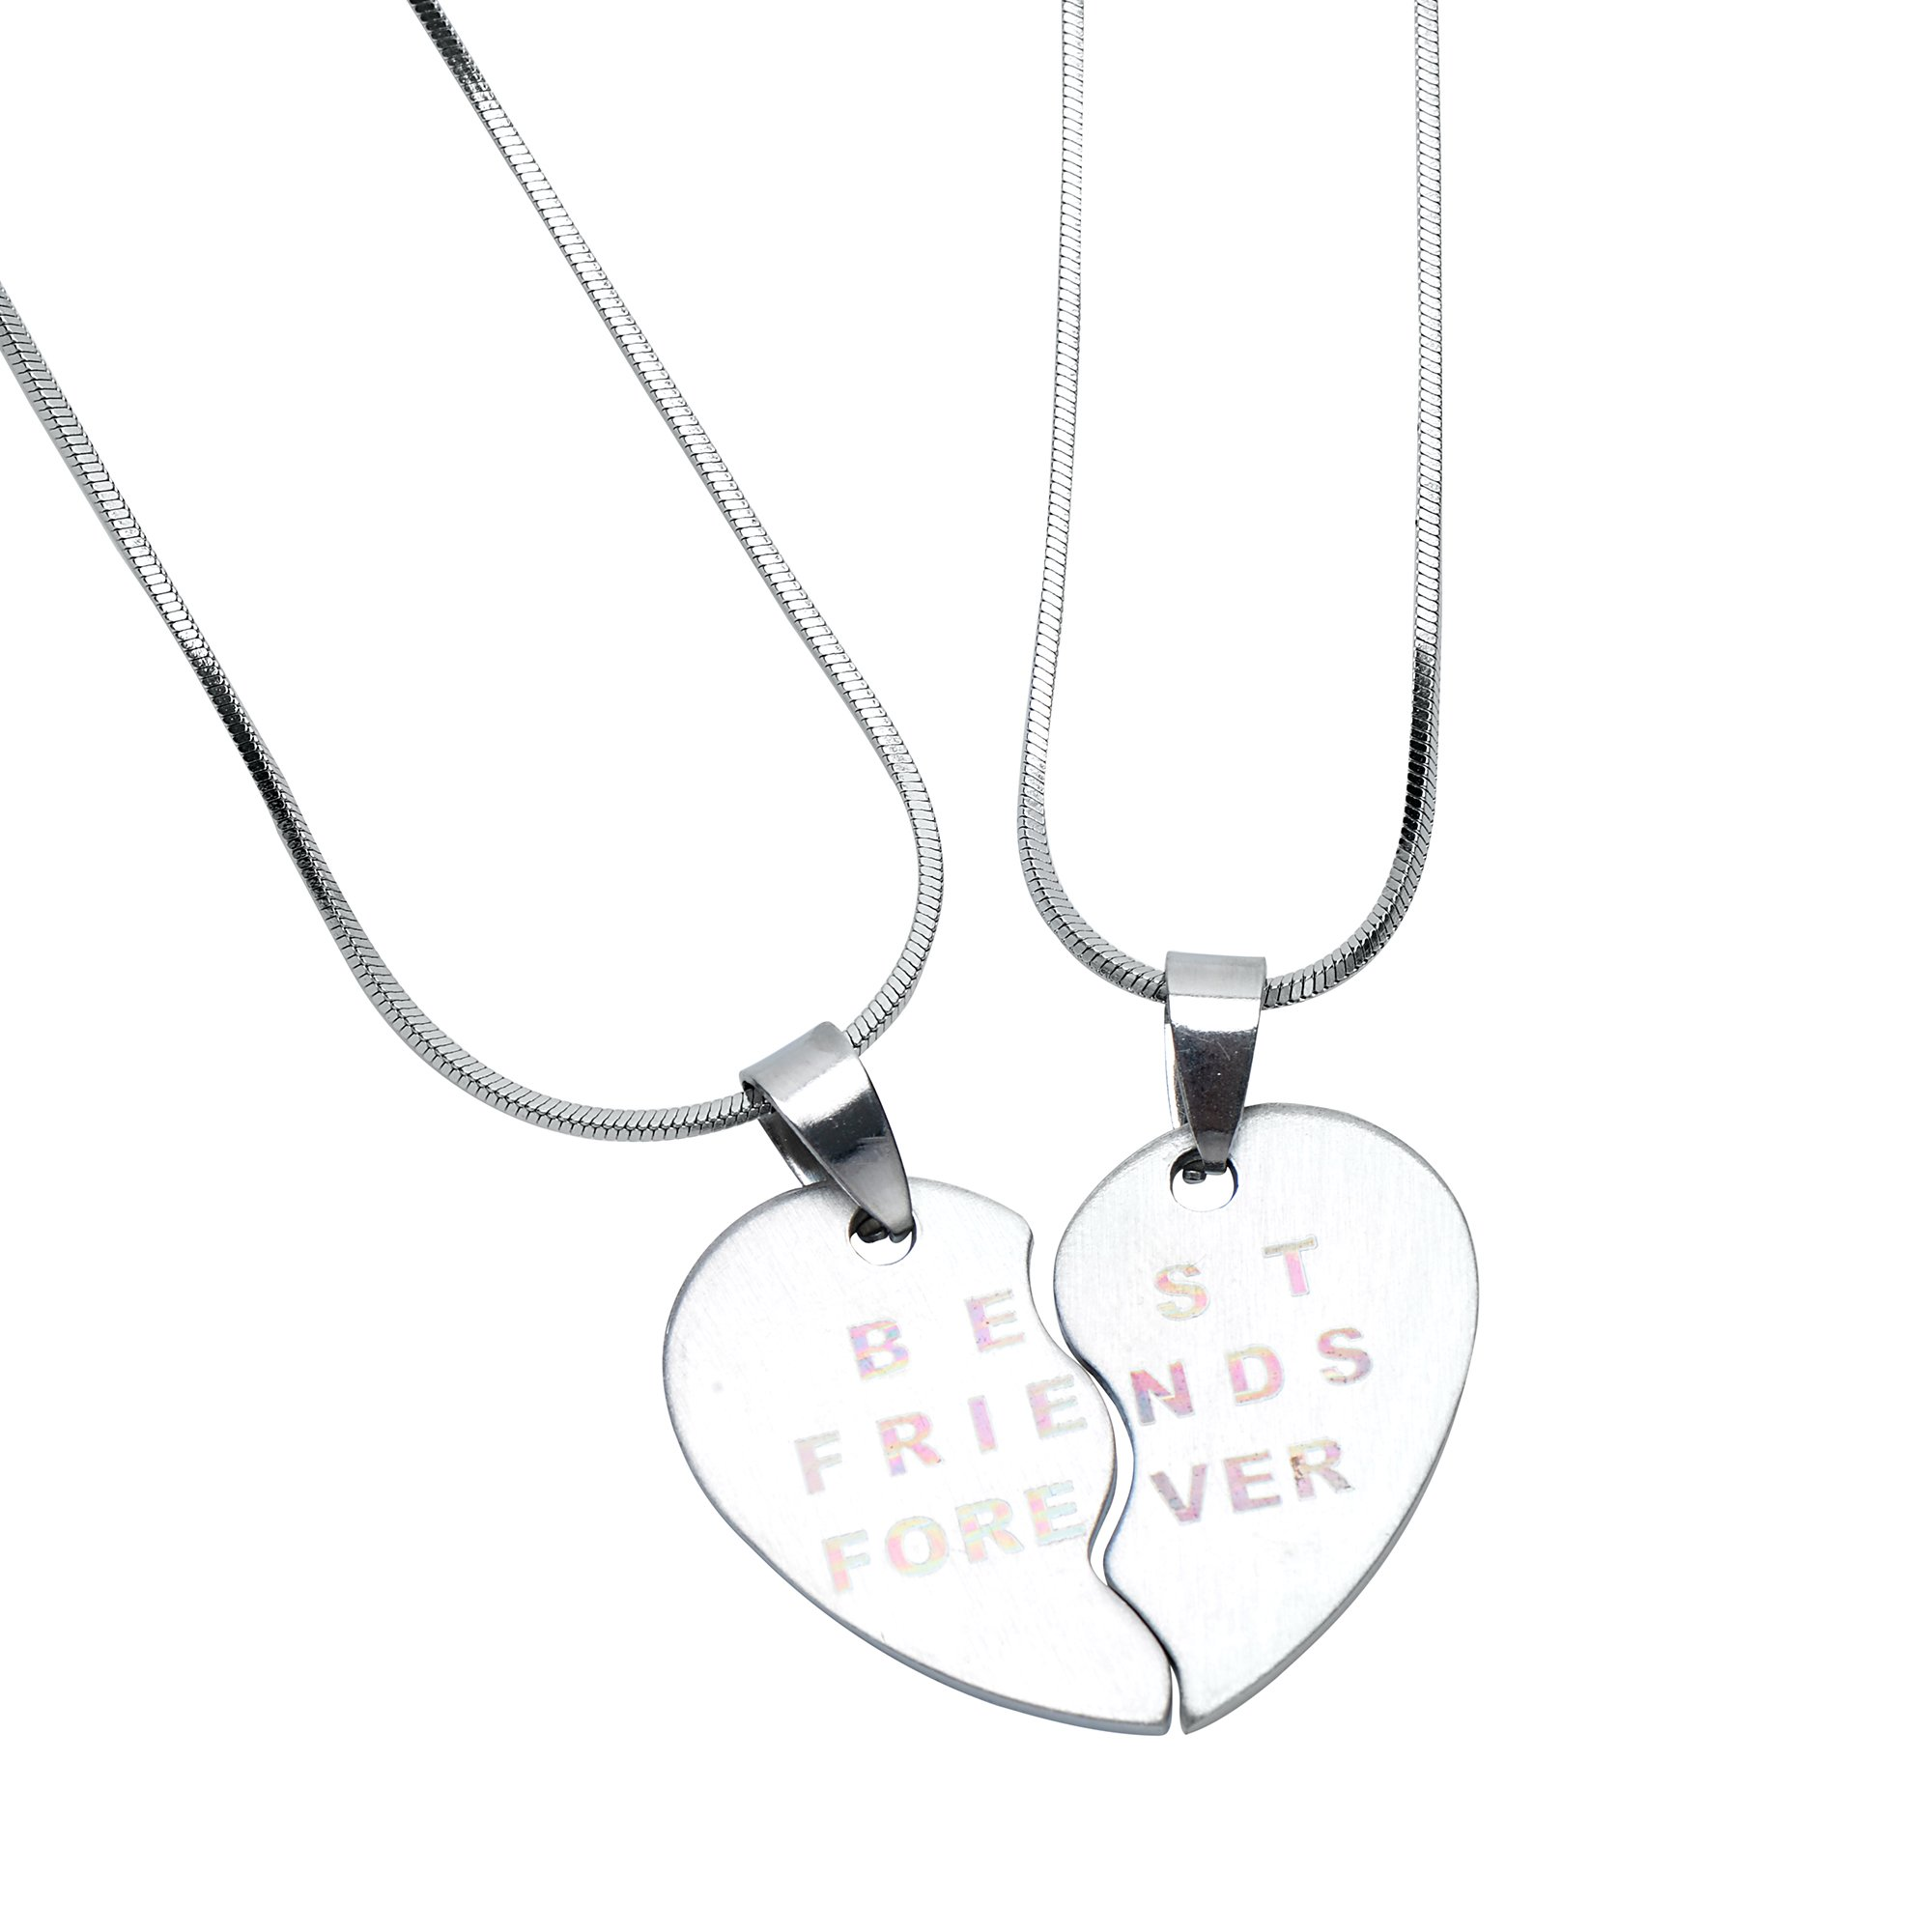 Stainless Steel - BFF Necklace for 2 - Friendship Gifts for Women